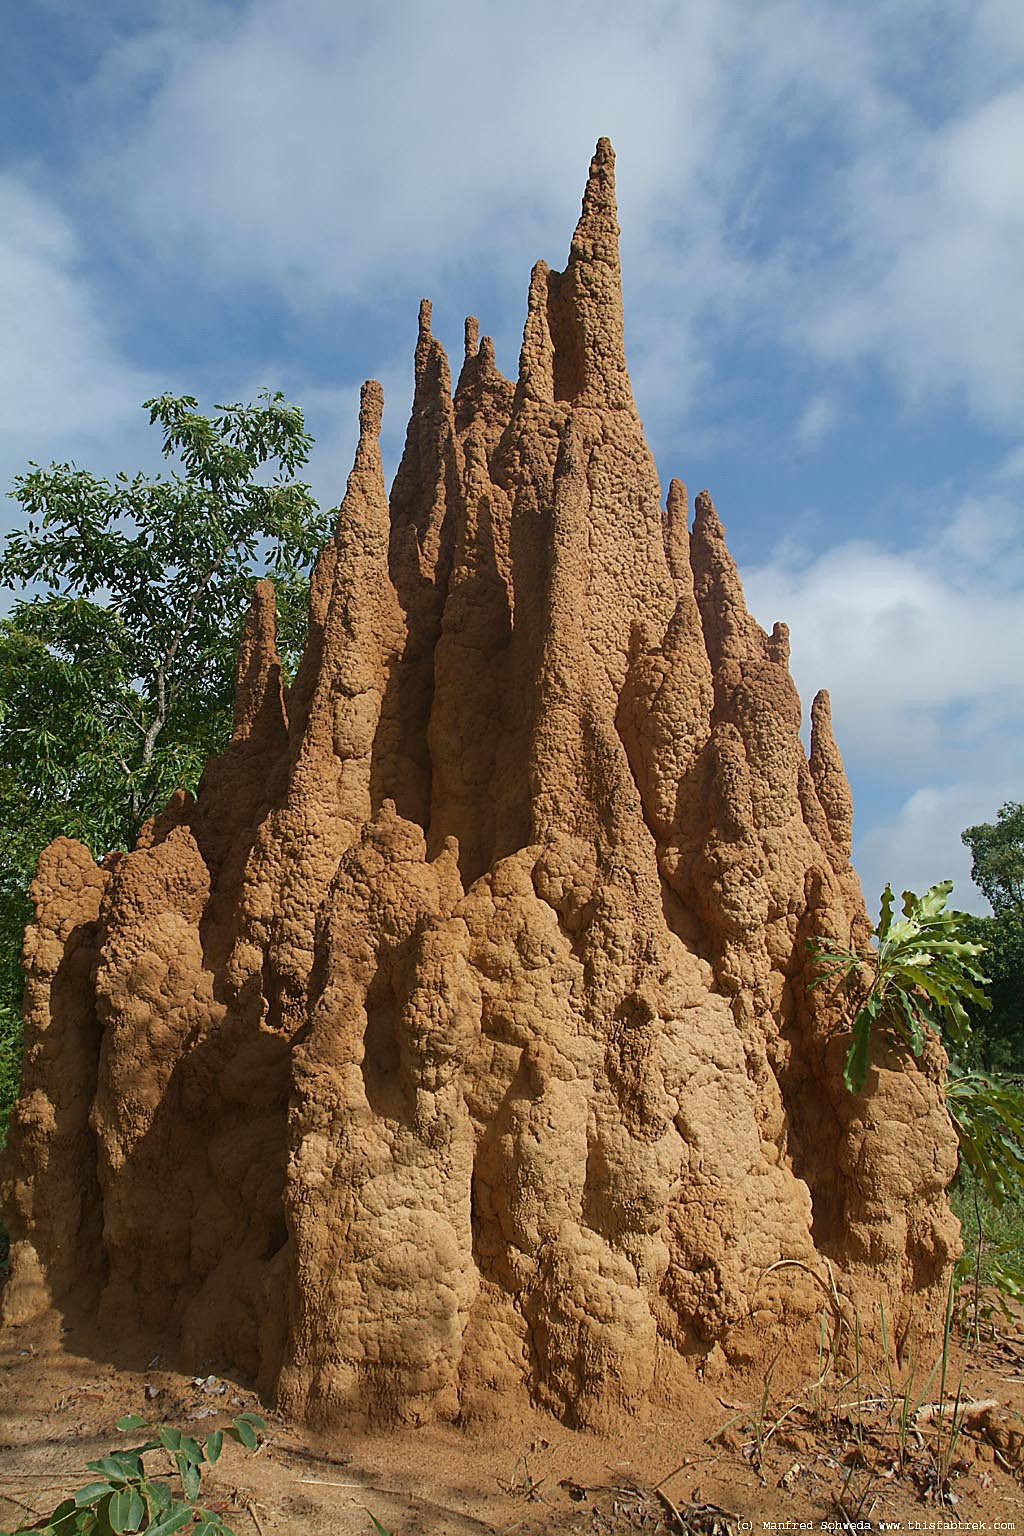 Termite mound cross section